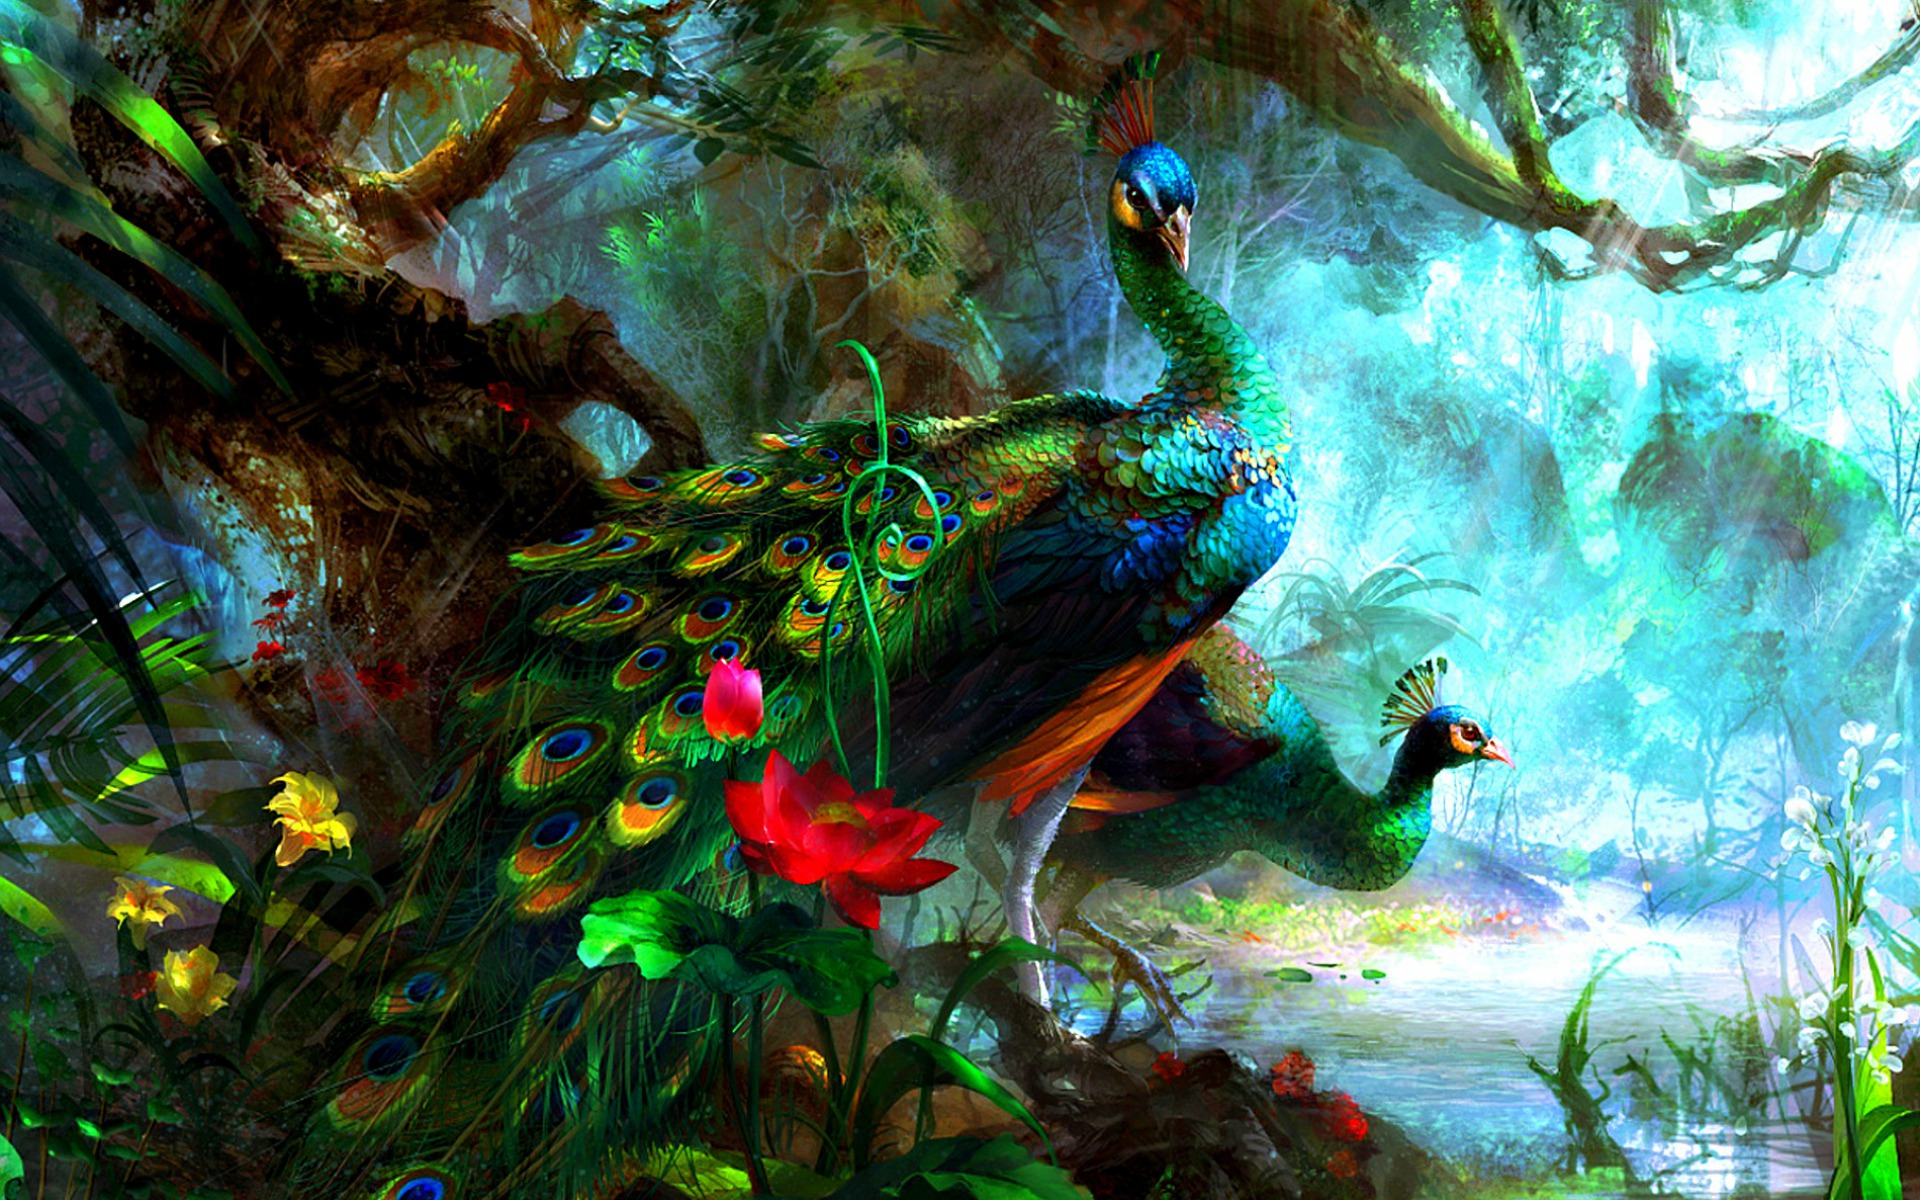 Peacock Art Photography Wallpaper Hq Backgrounds: Brightly Peacocks Stock Photos